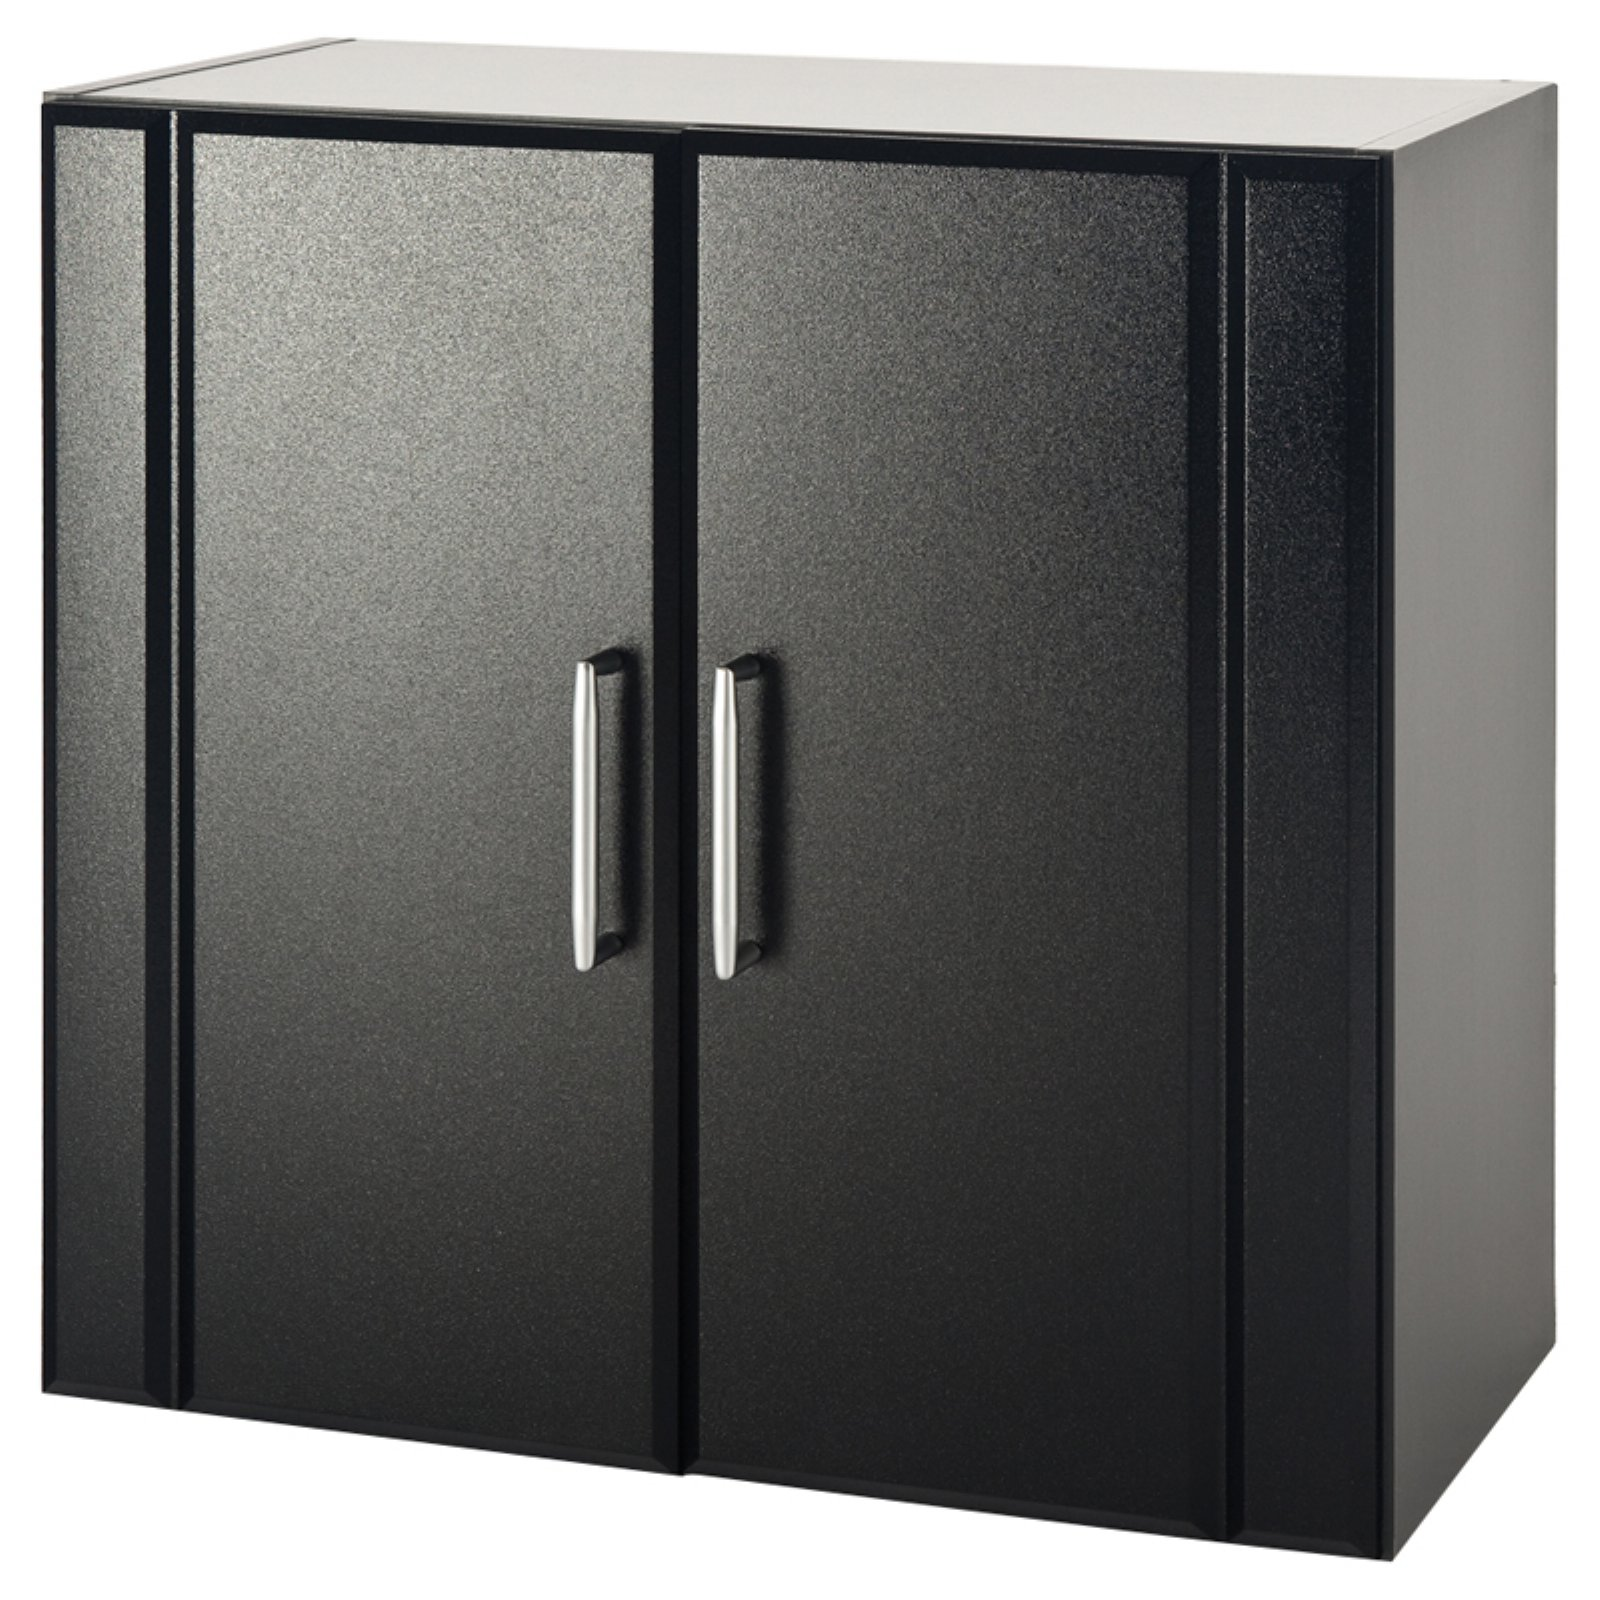 ClosetMaid 2 Door Wall Cabinet with Adjustable Shelf